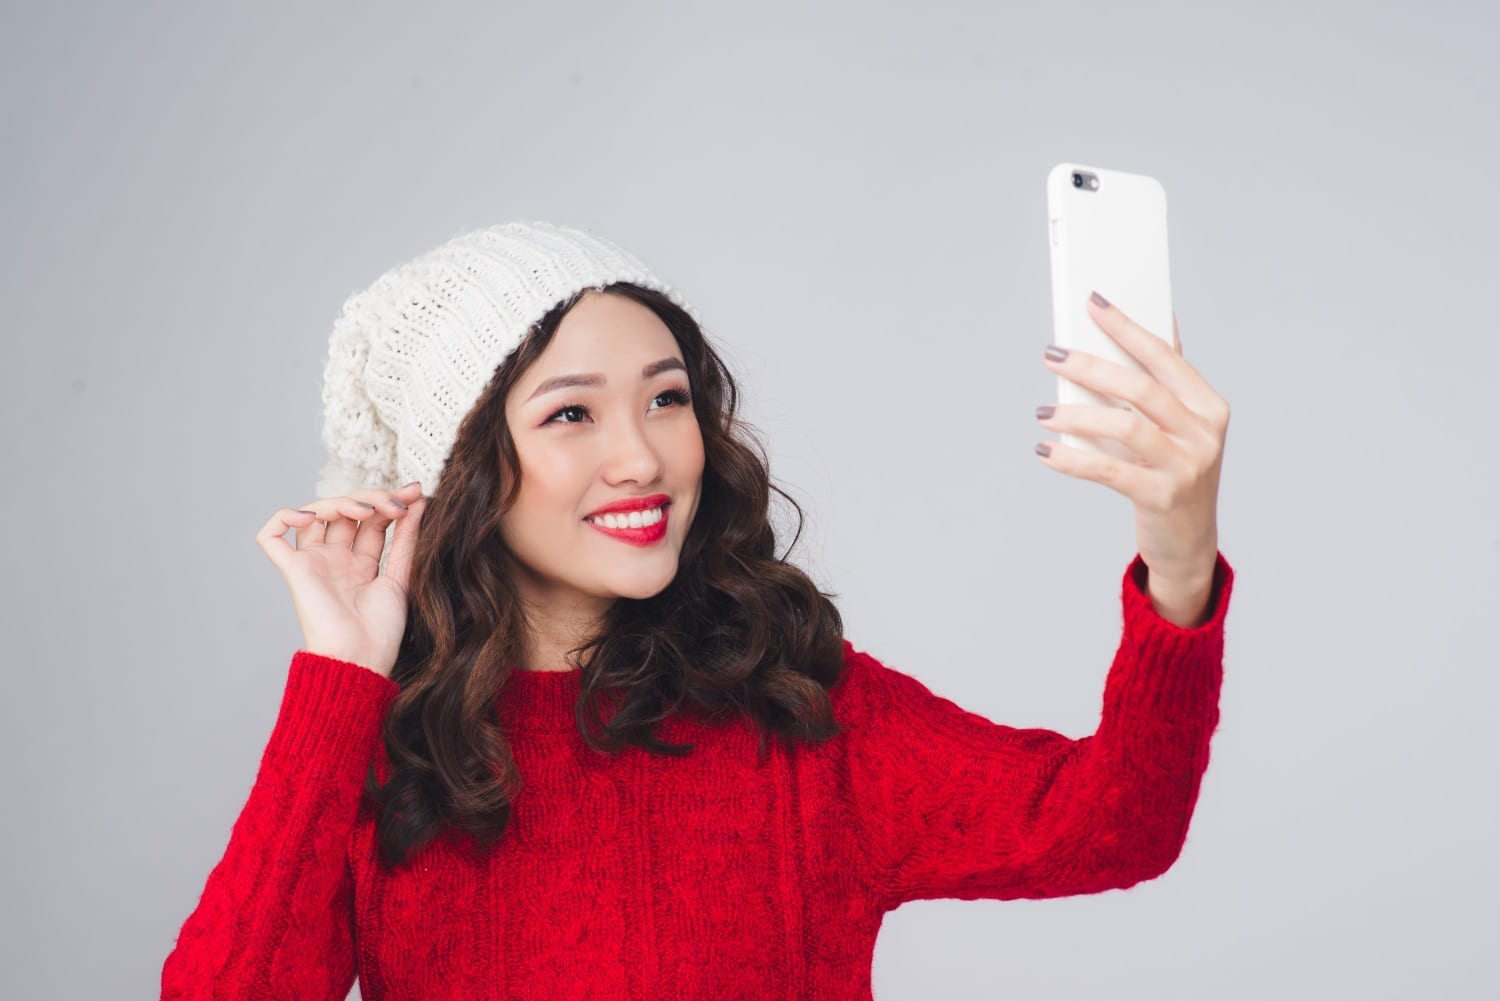 Happy young woman wearing winter clothing taking a selfie photo